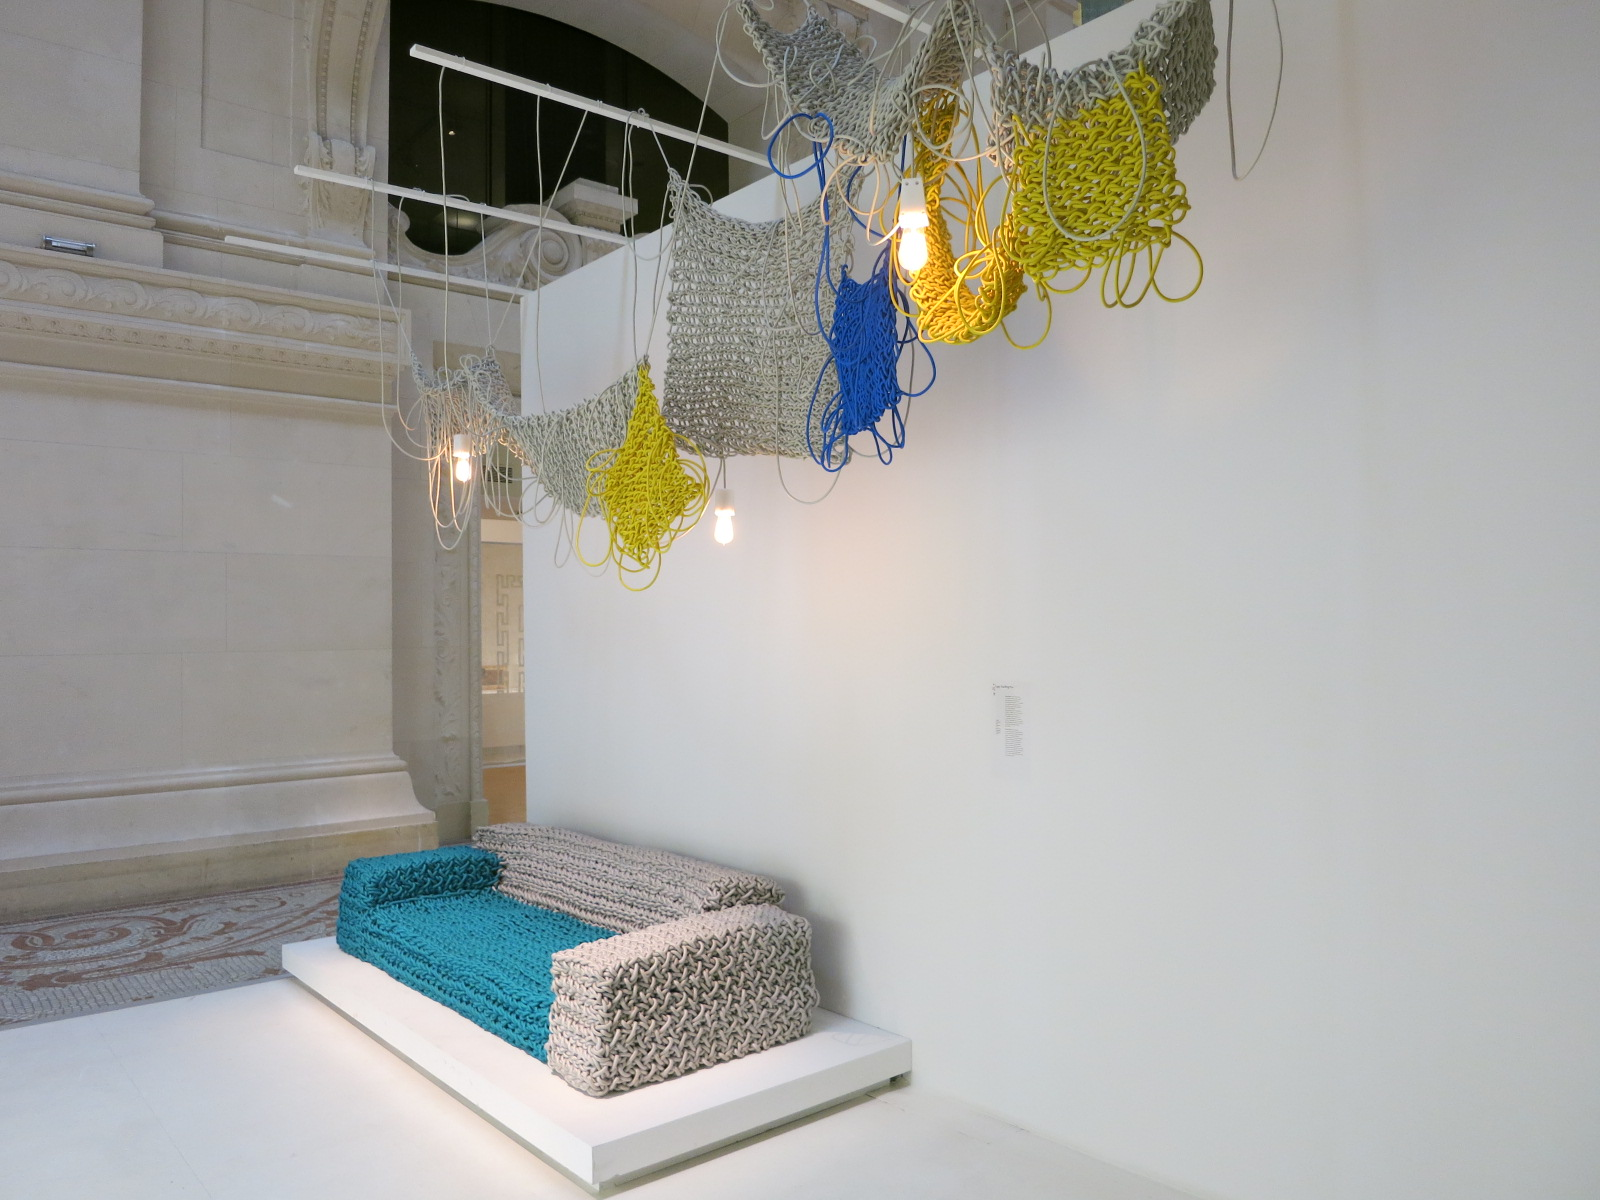 Musee des Art Decoratifs, Paris. 'Korea Now' exhibition 2015. The knitted sofa was designed by Lee Kwang-ho.